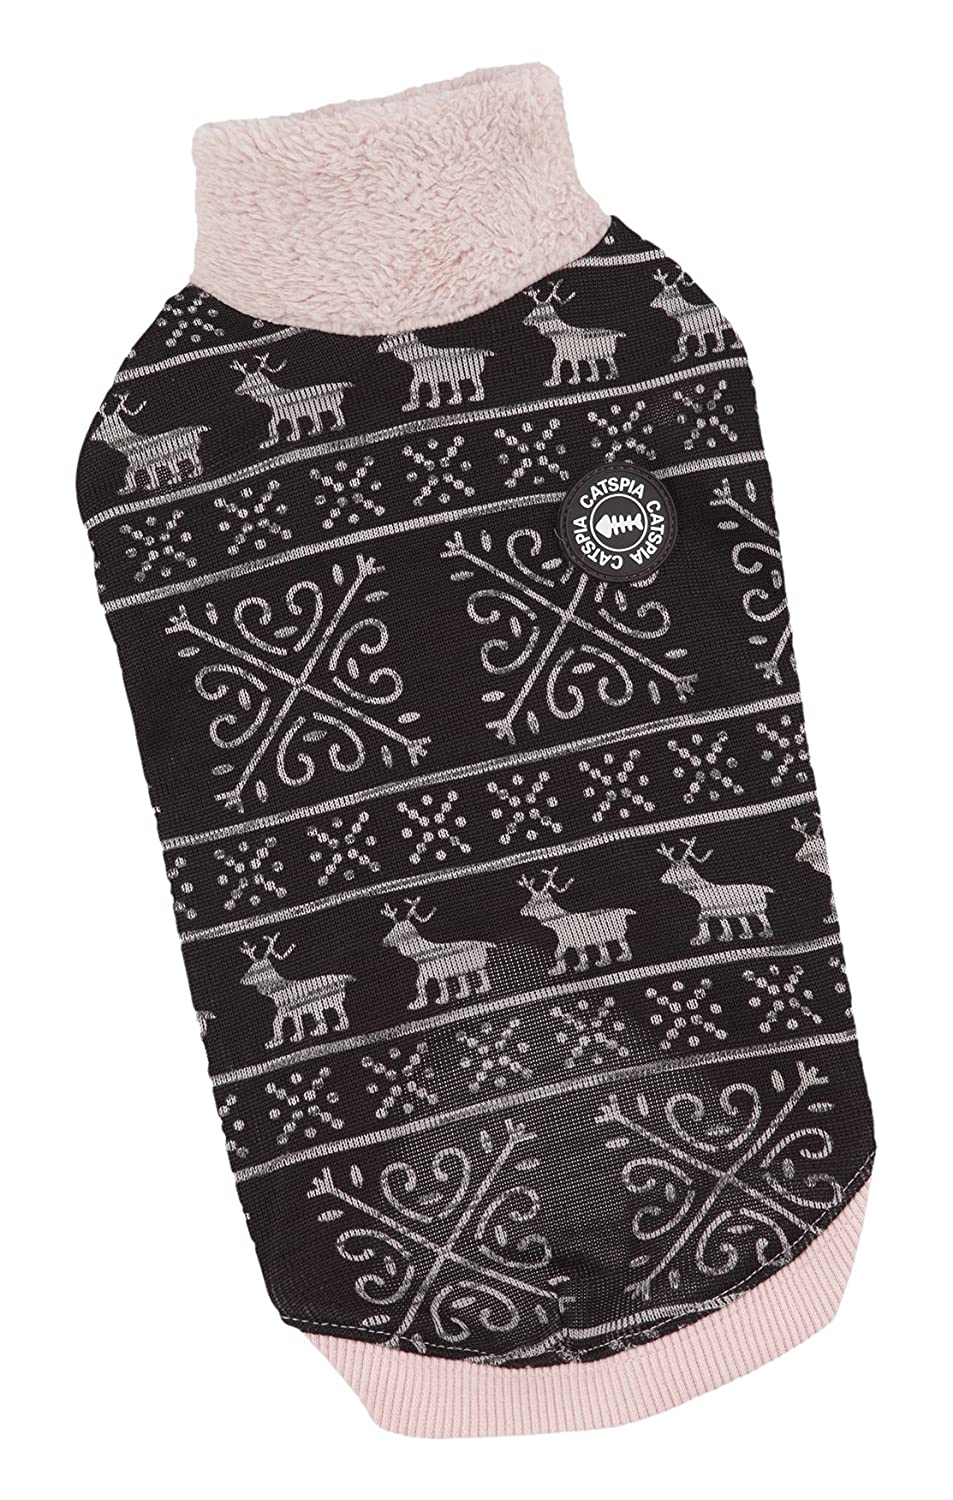 CATSPIA Dasher Sweater, Large, Pink